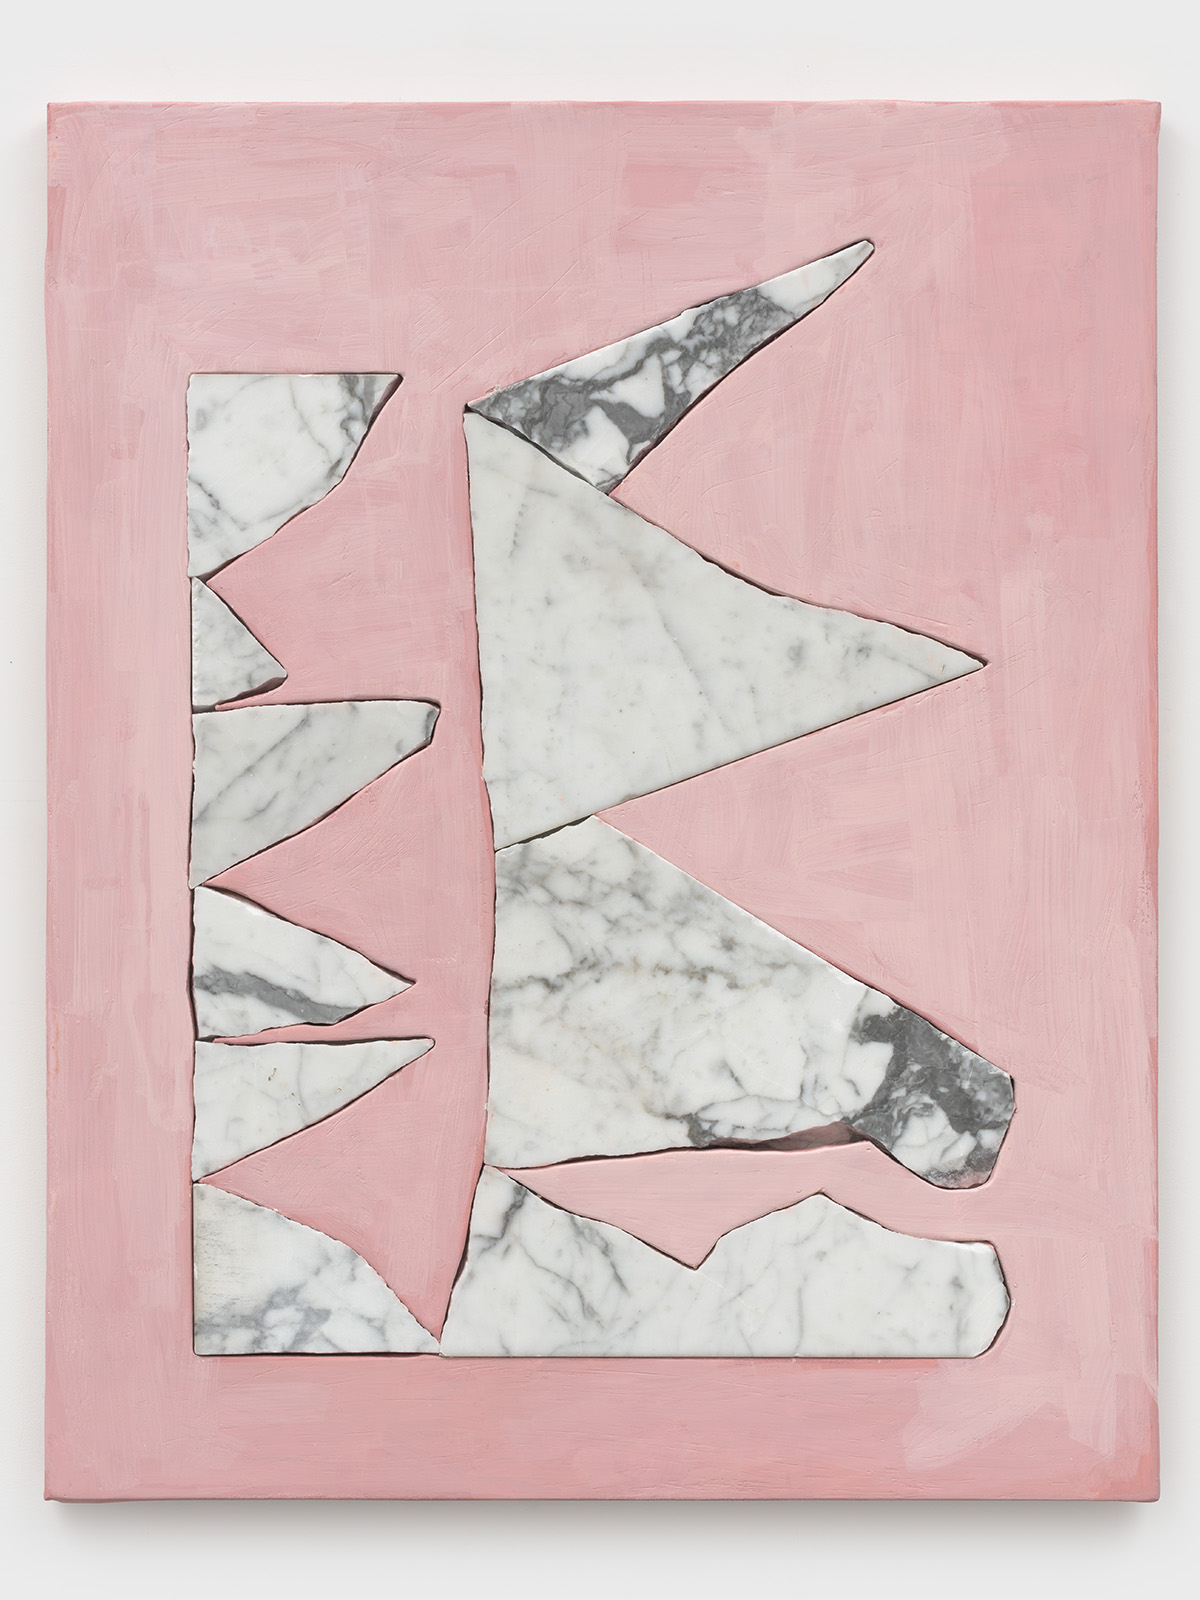 Artist Sam Moyer creates a personal narrative in abstraction